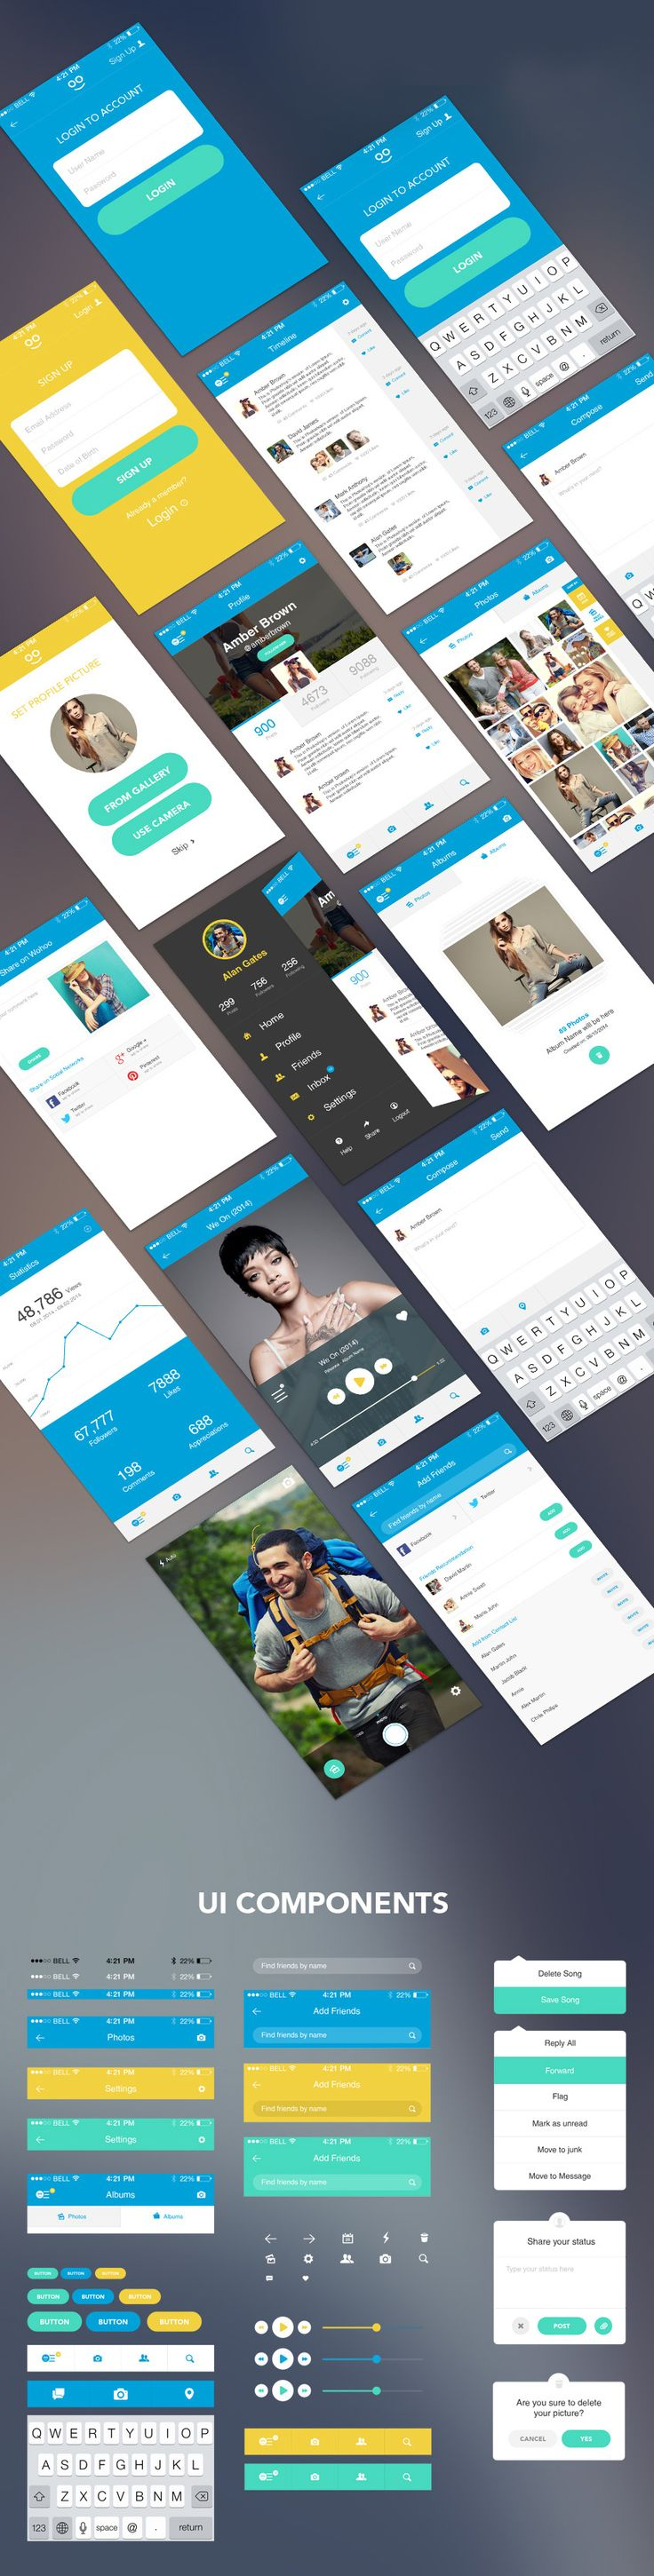 http://wall.fiiiiiiiig.com/wp-content/uploads/2015/04/free-mobile-app-ui-kit-full-view-1.jpg